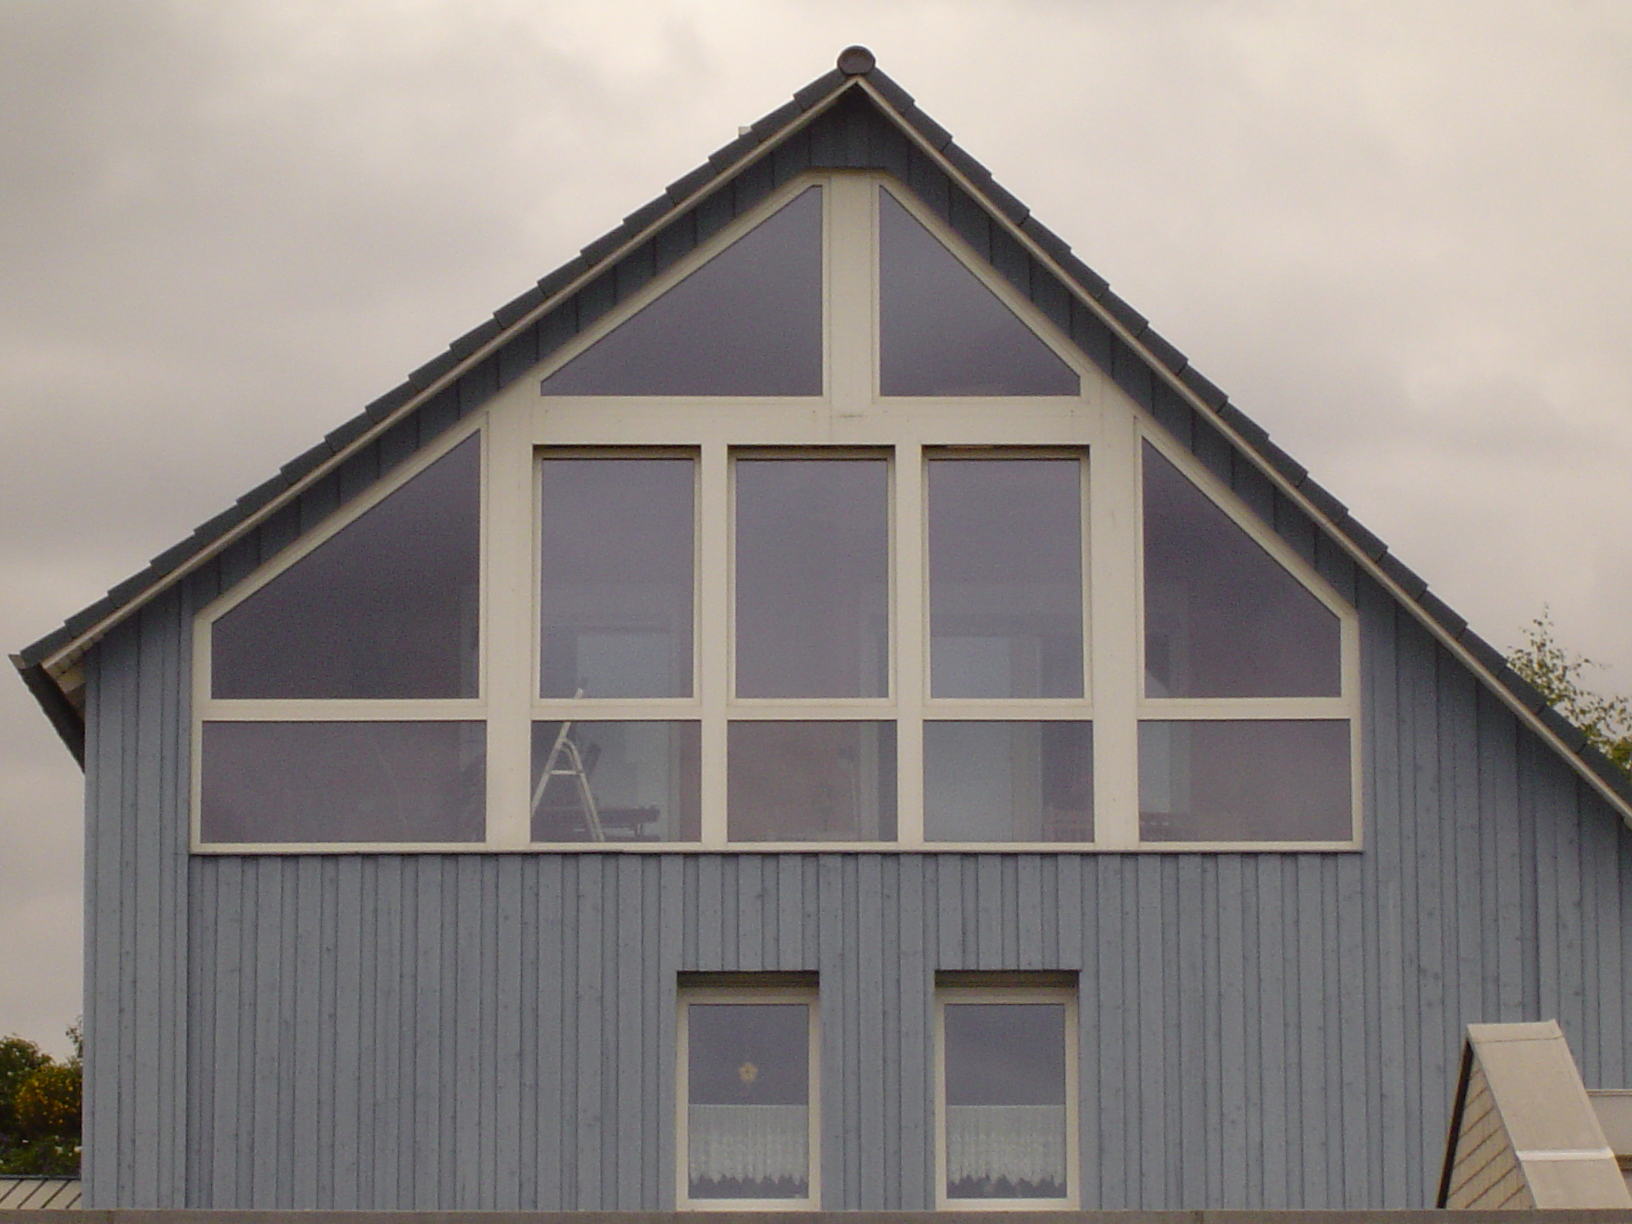 rigoletto shed house pointed roof windows